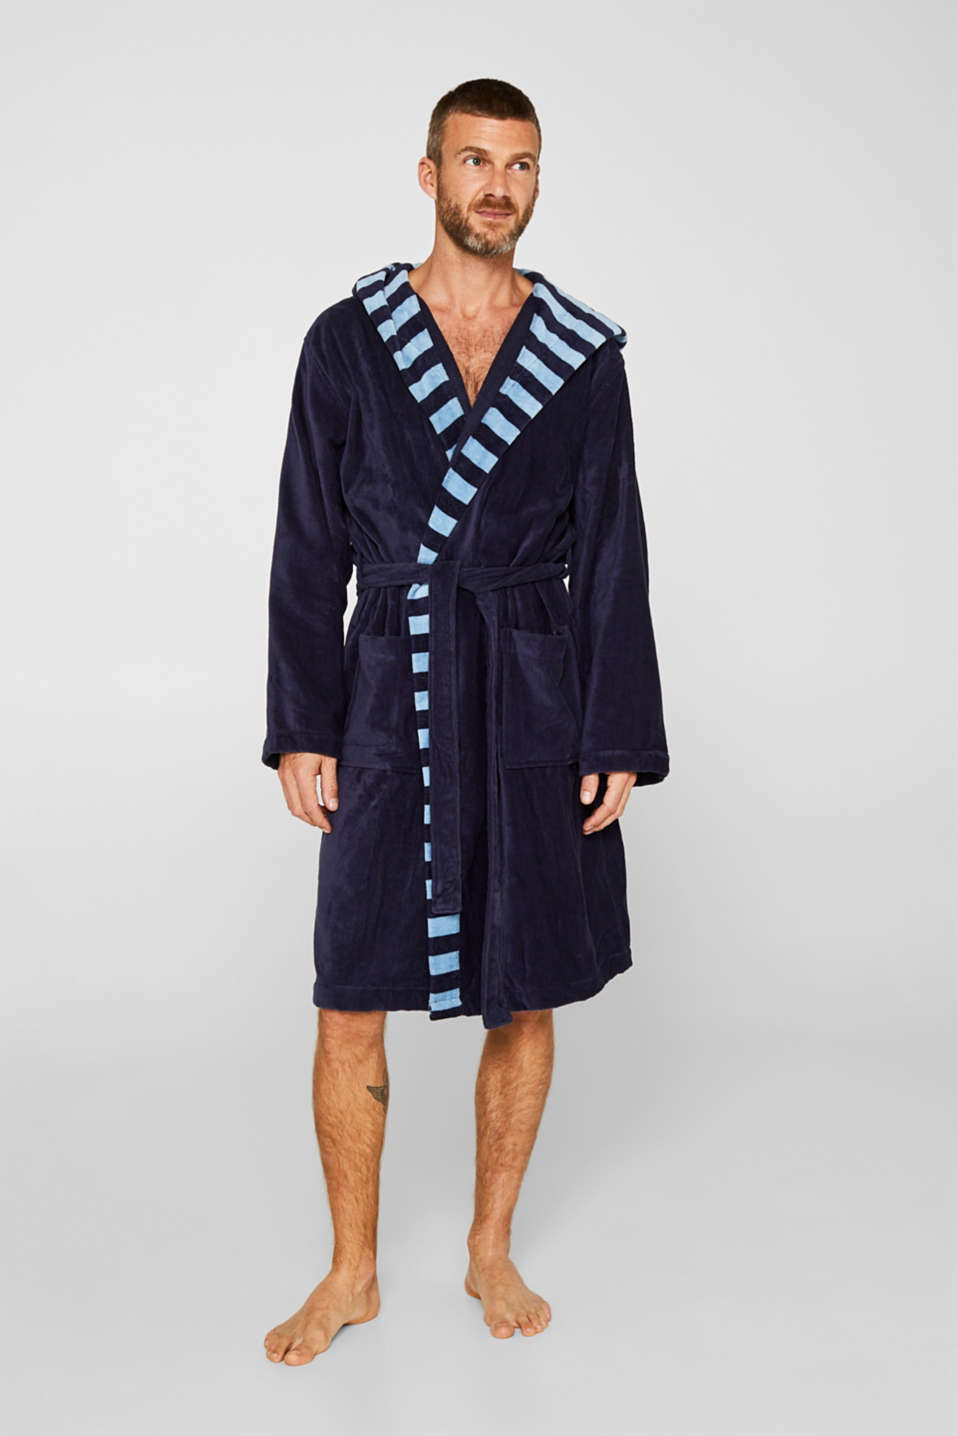 Mens striped bathrobe, 100% cotton, NAVY BLUE, detail image number 1